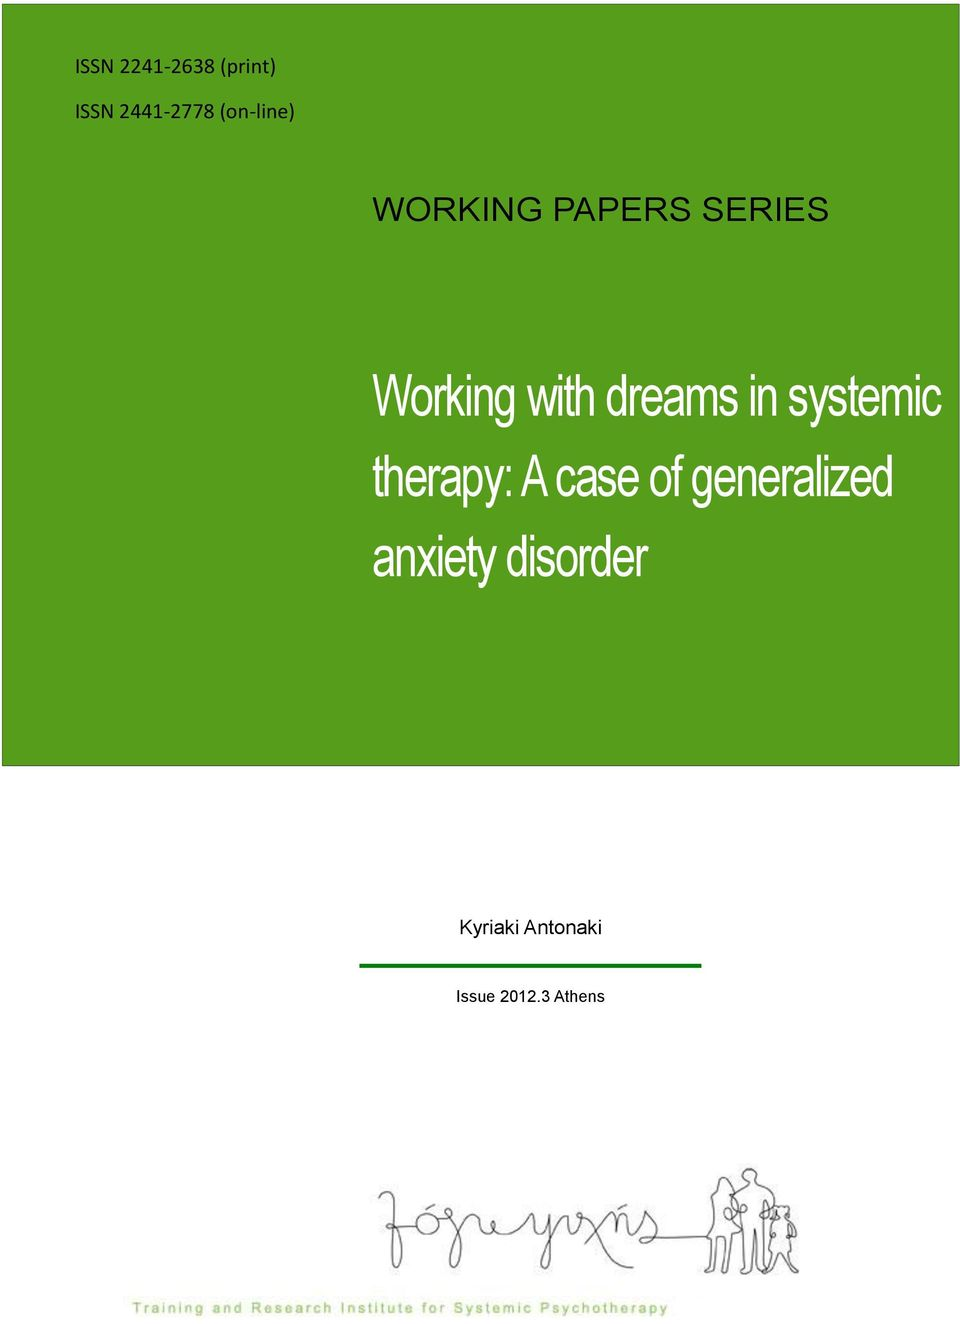 dreams in systemic therapy: A case of